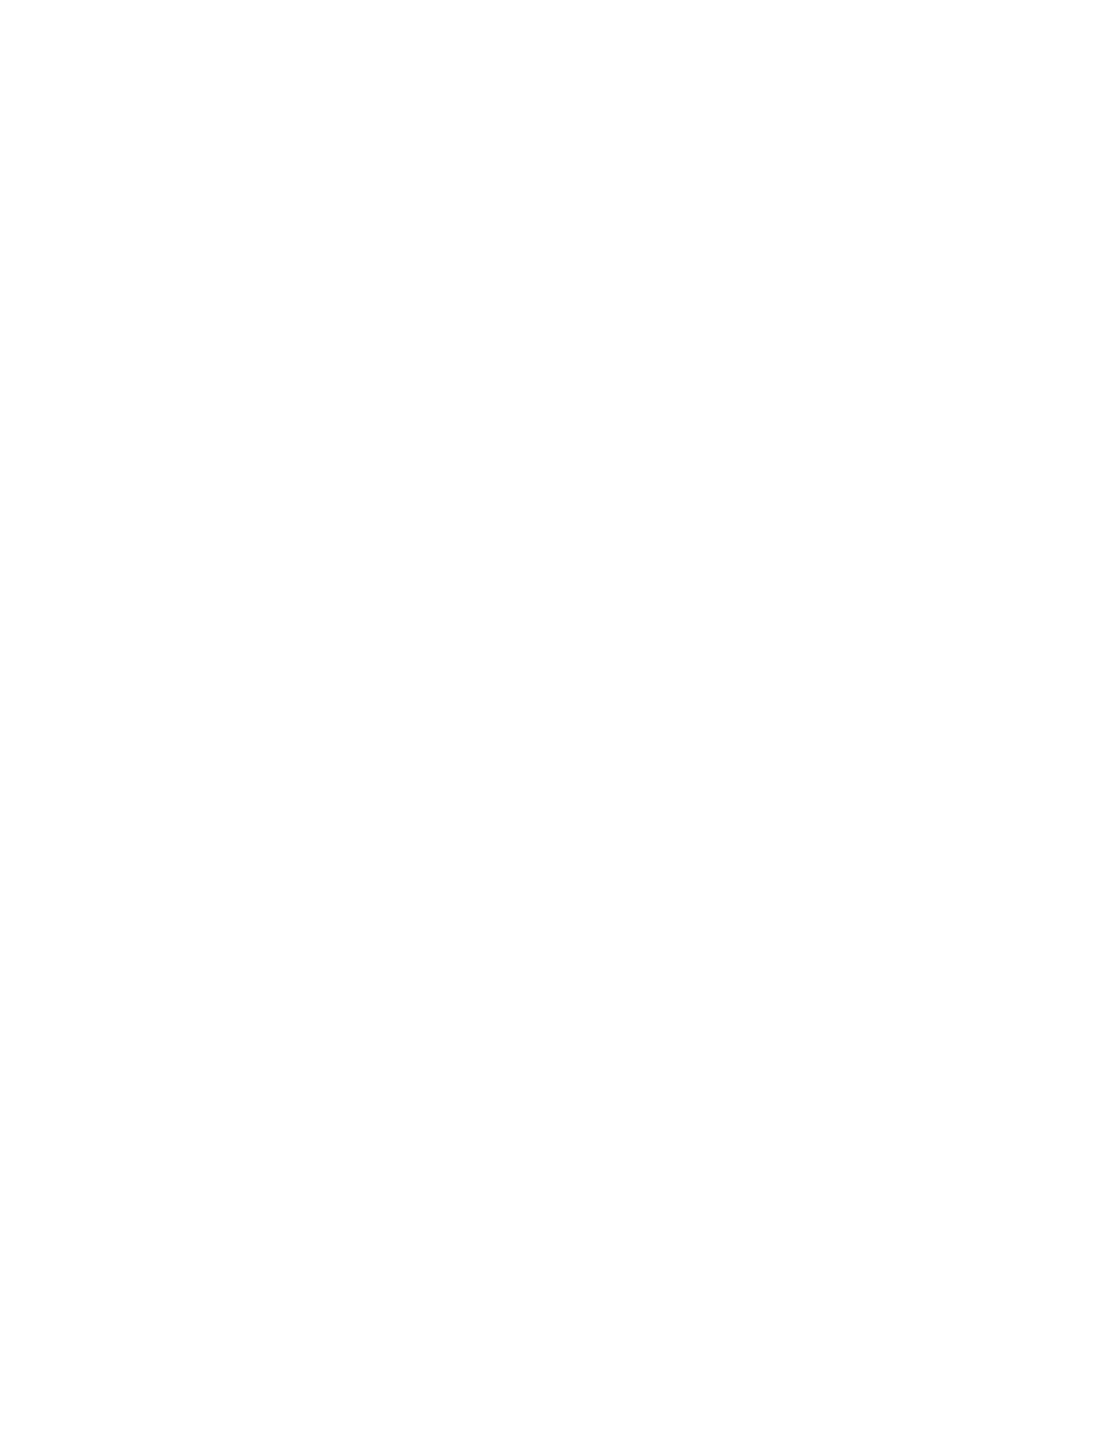 Easy / Fast Turn Around / Trust & Quality / Expertise & Qualifie / Affordable